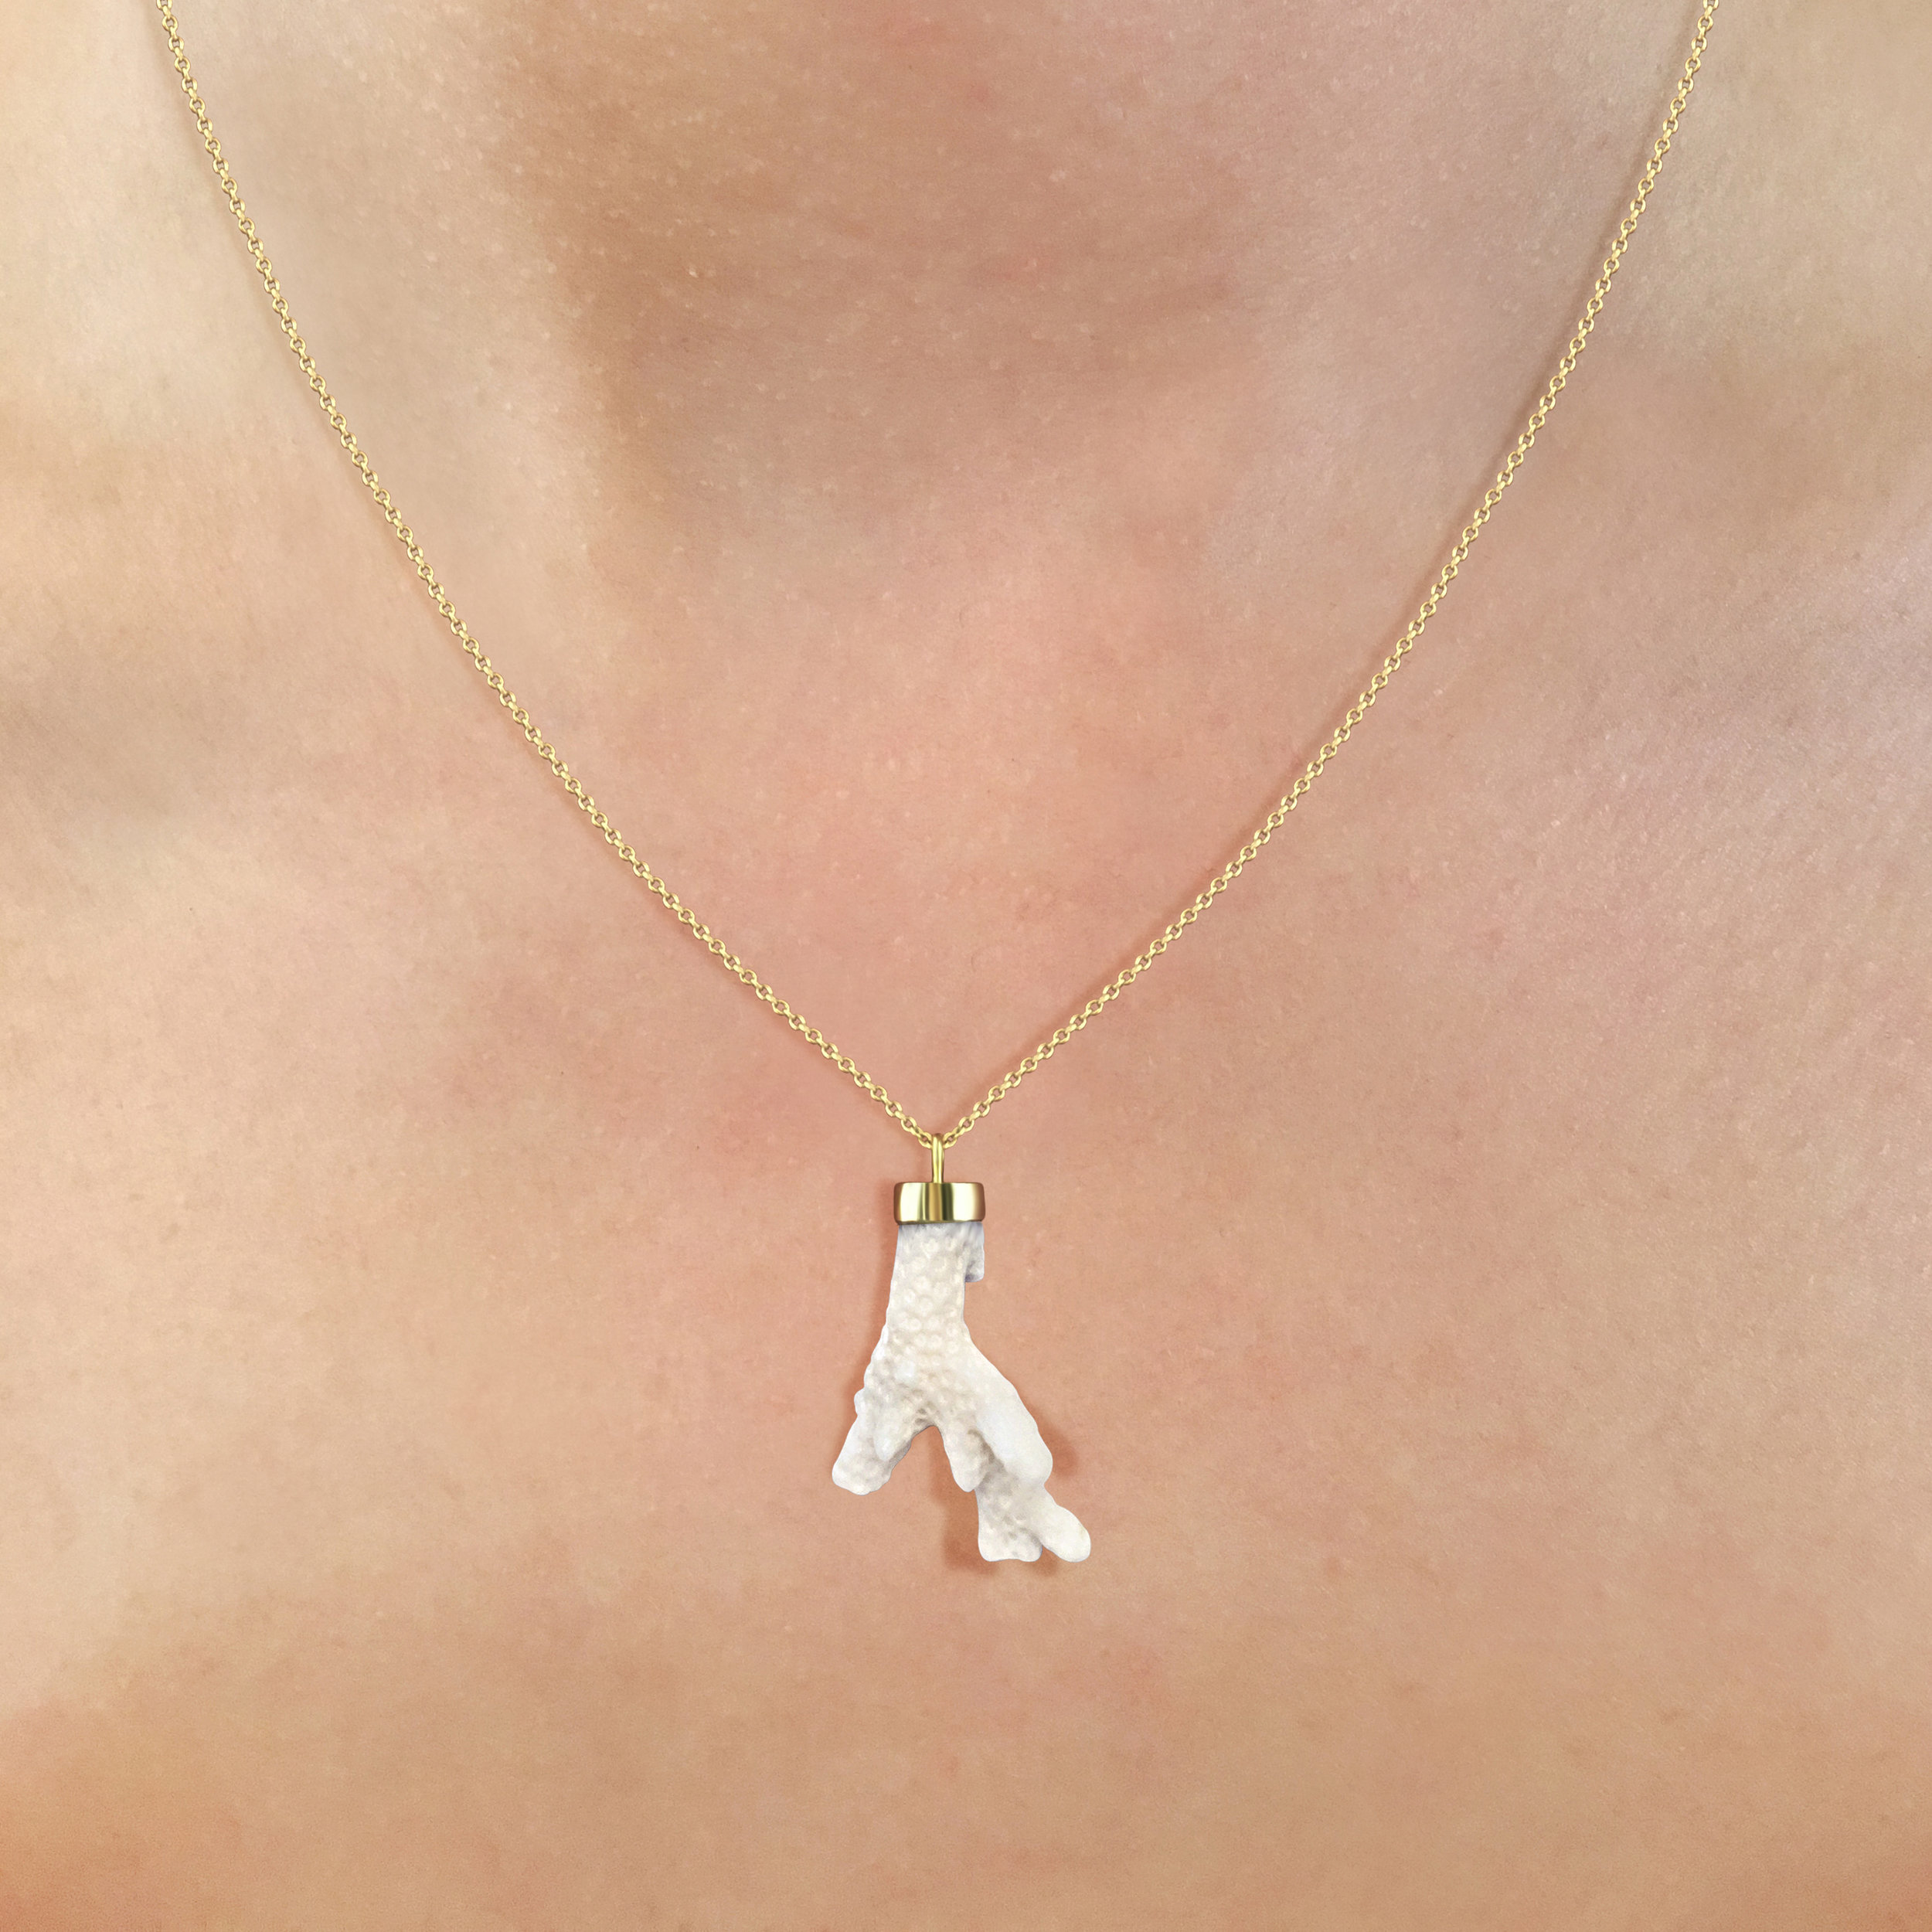 bespoke-coral-and-18ct-gold-pendant.jpg